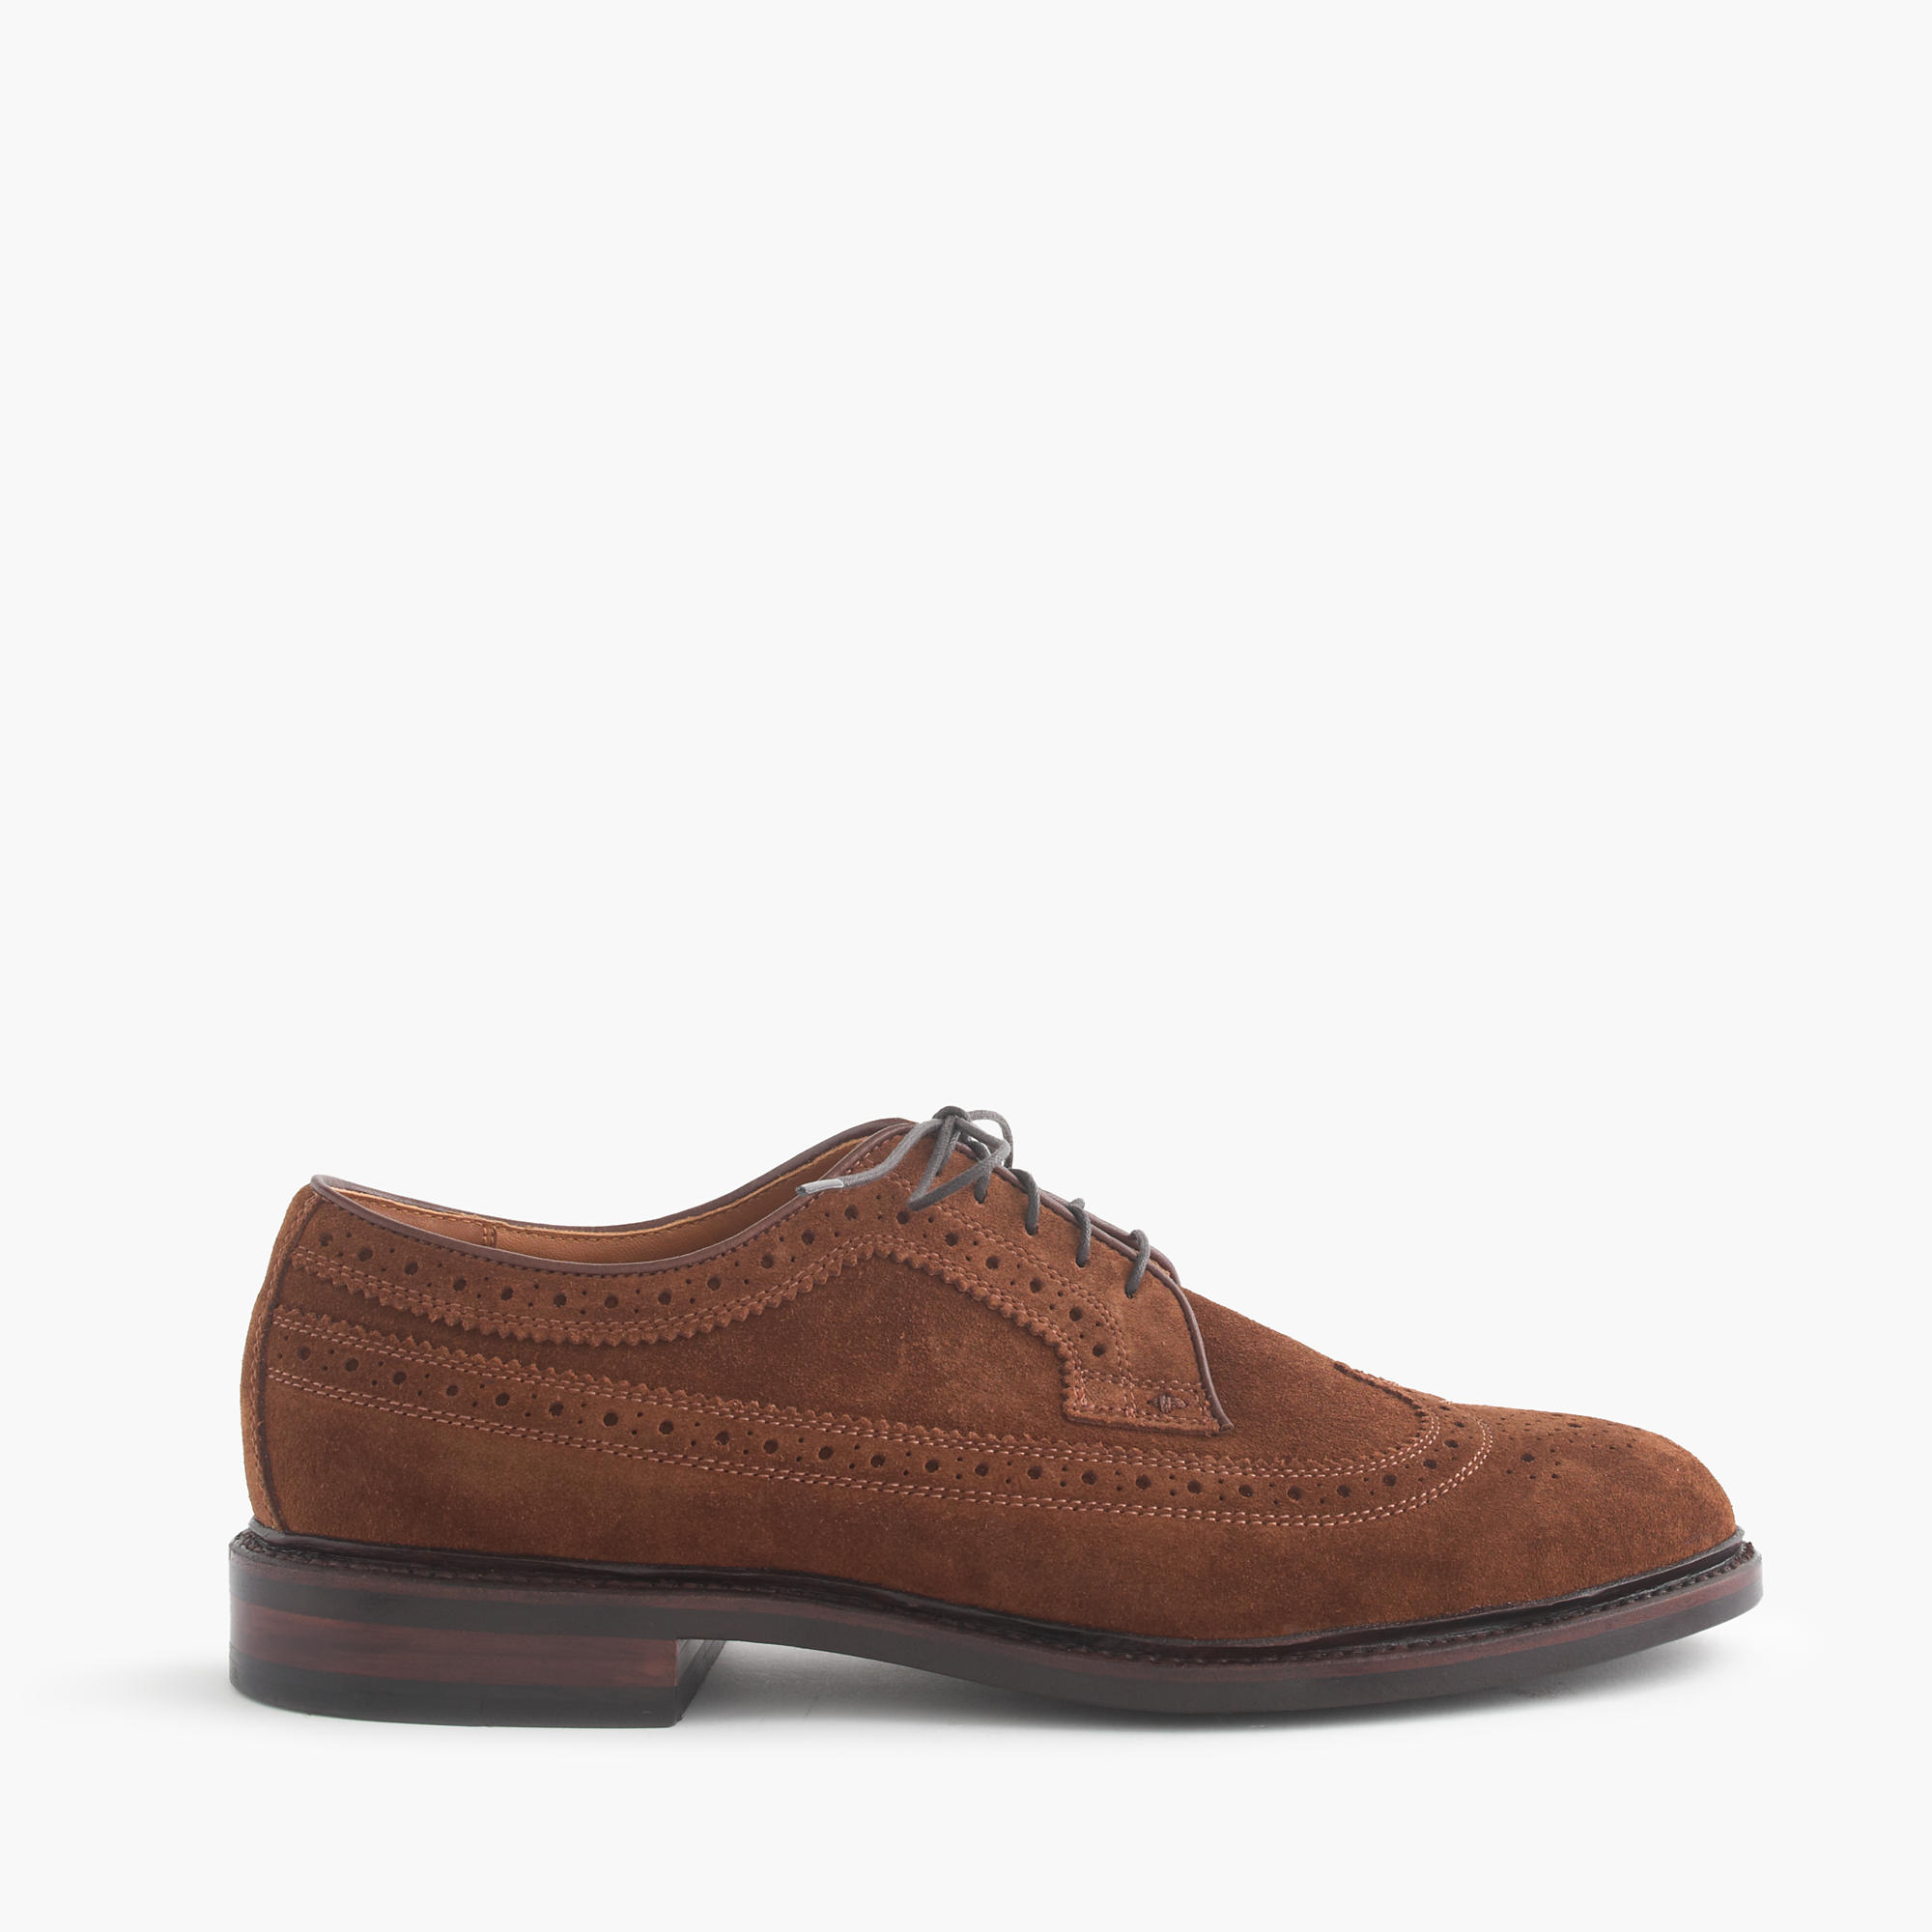 ludlow suede wing tips dress shoes j crew